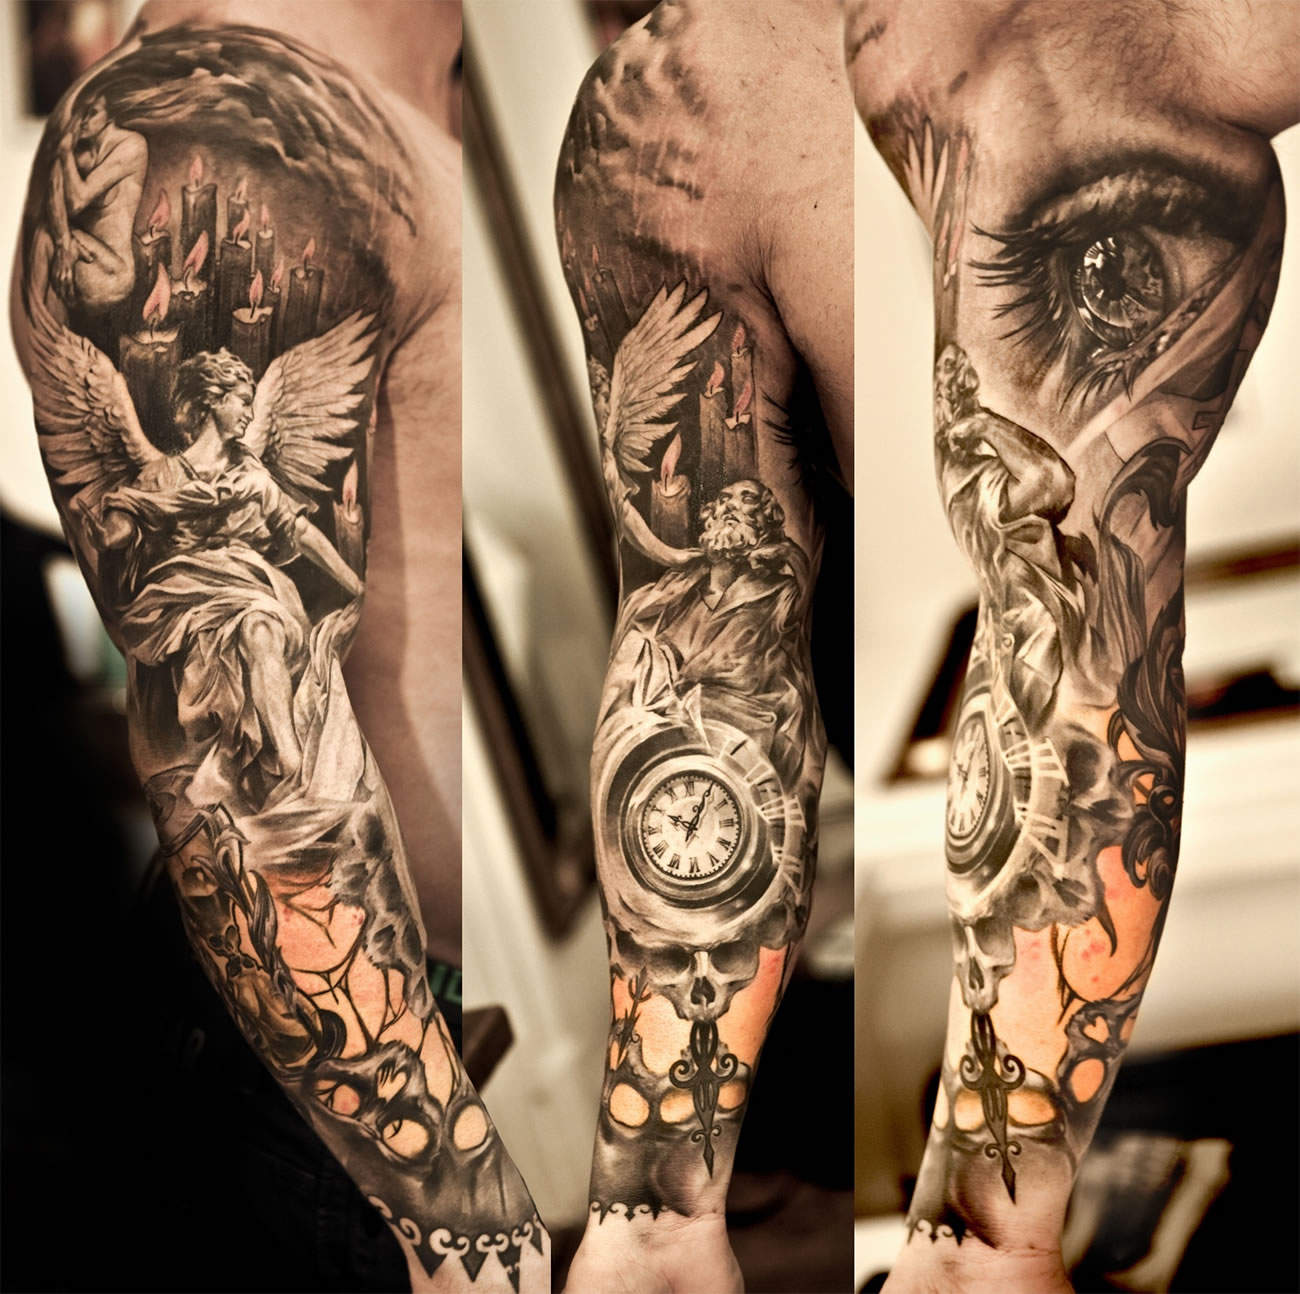 05977a6837abe Intricate 3D clock tattoo by Niki Norberg 3D angel sleeve with realistic  eye by Niki Norberg